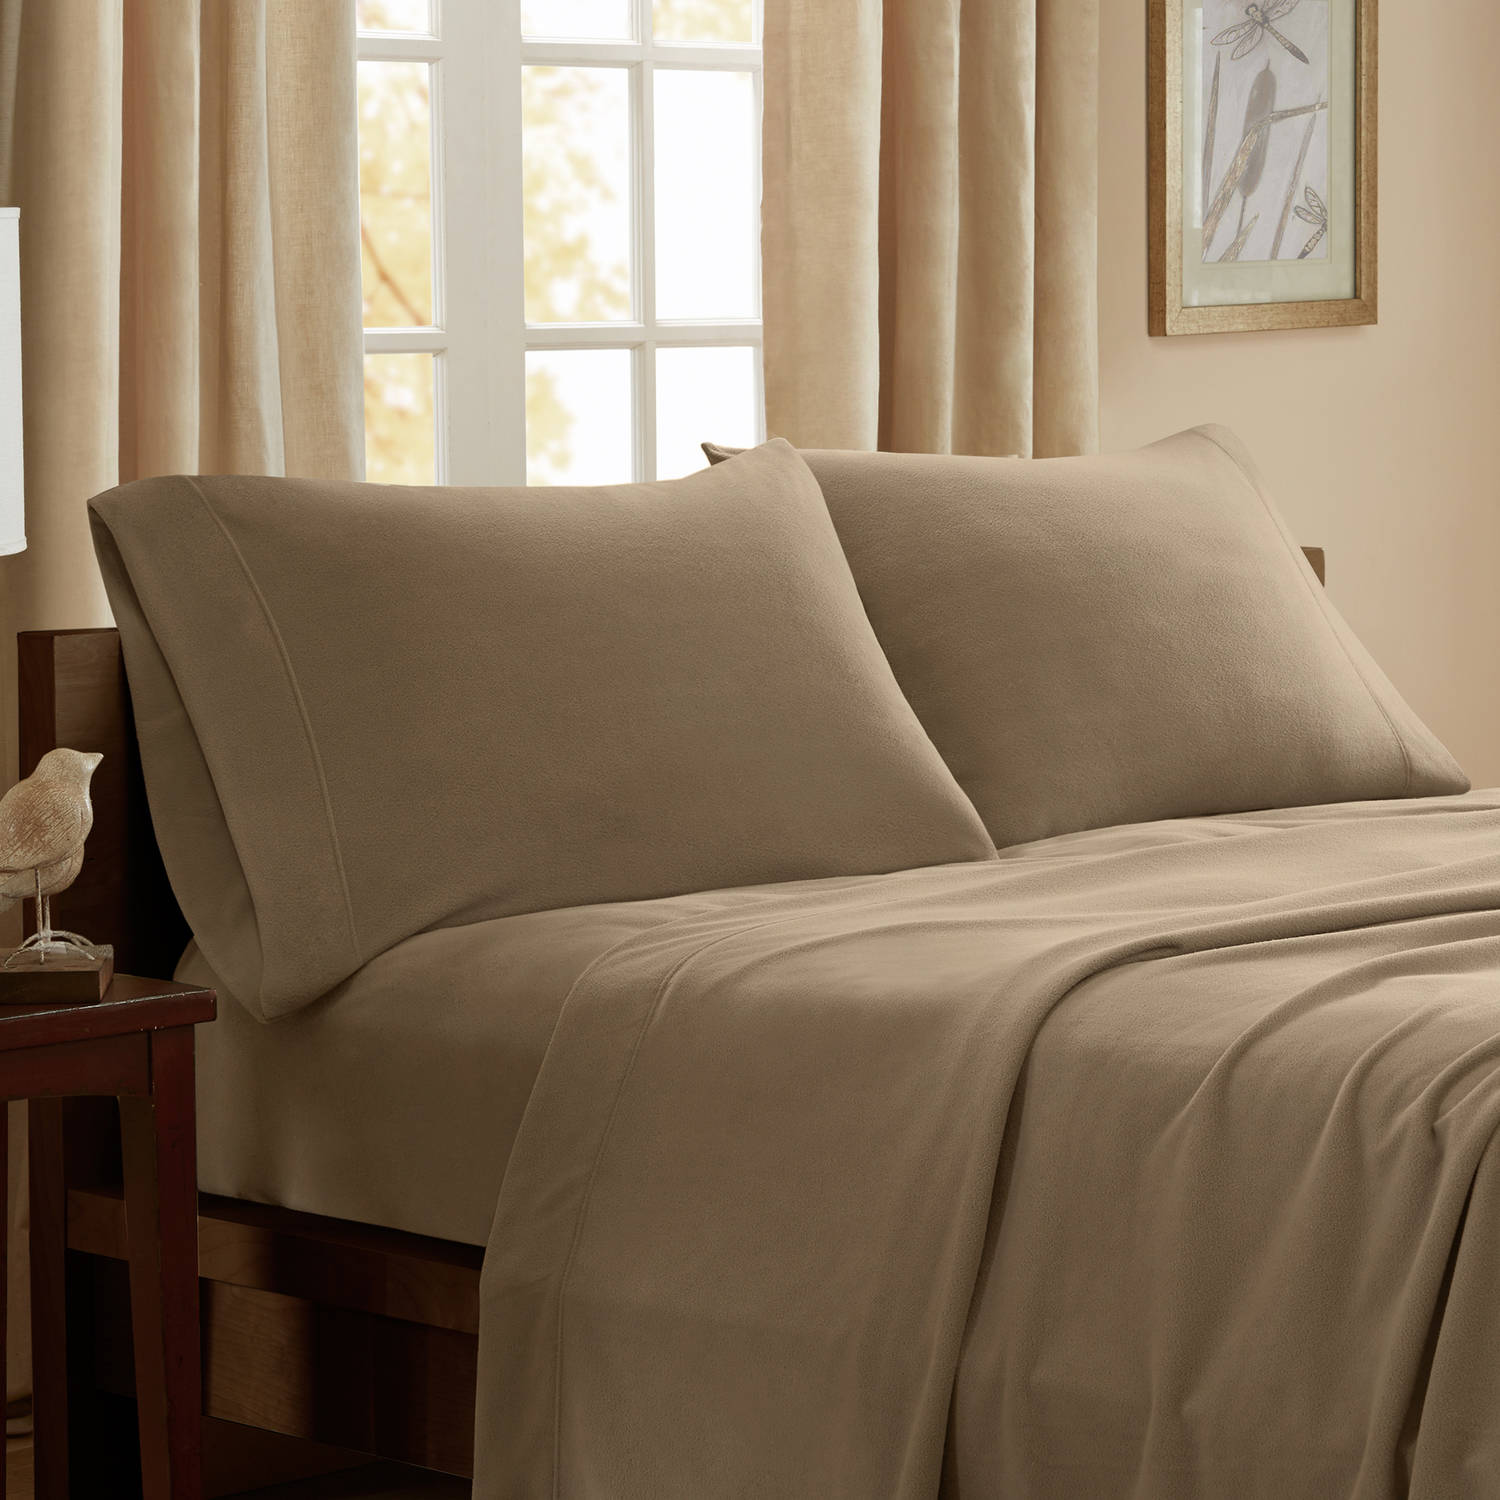 Comfort Classics 3M Scotchgard Micro Fleece Sheet Set